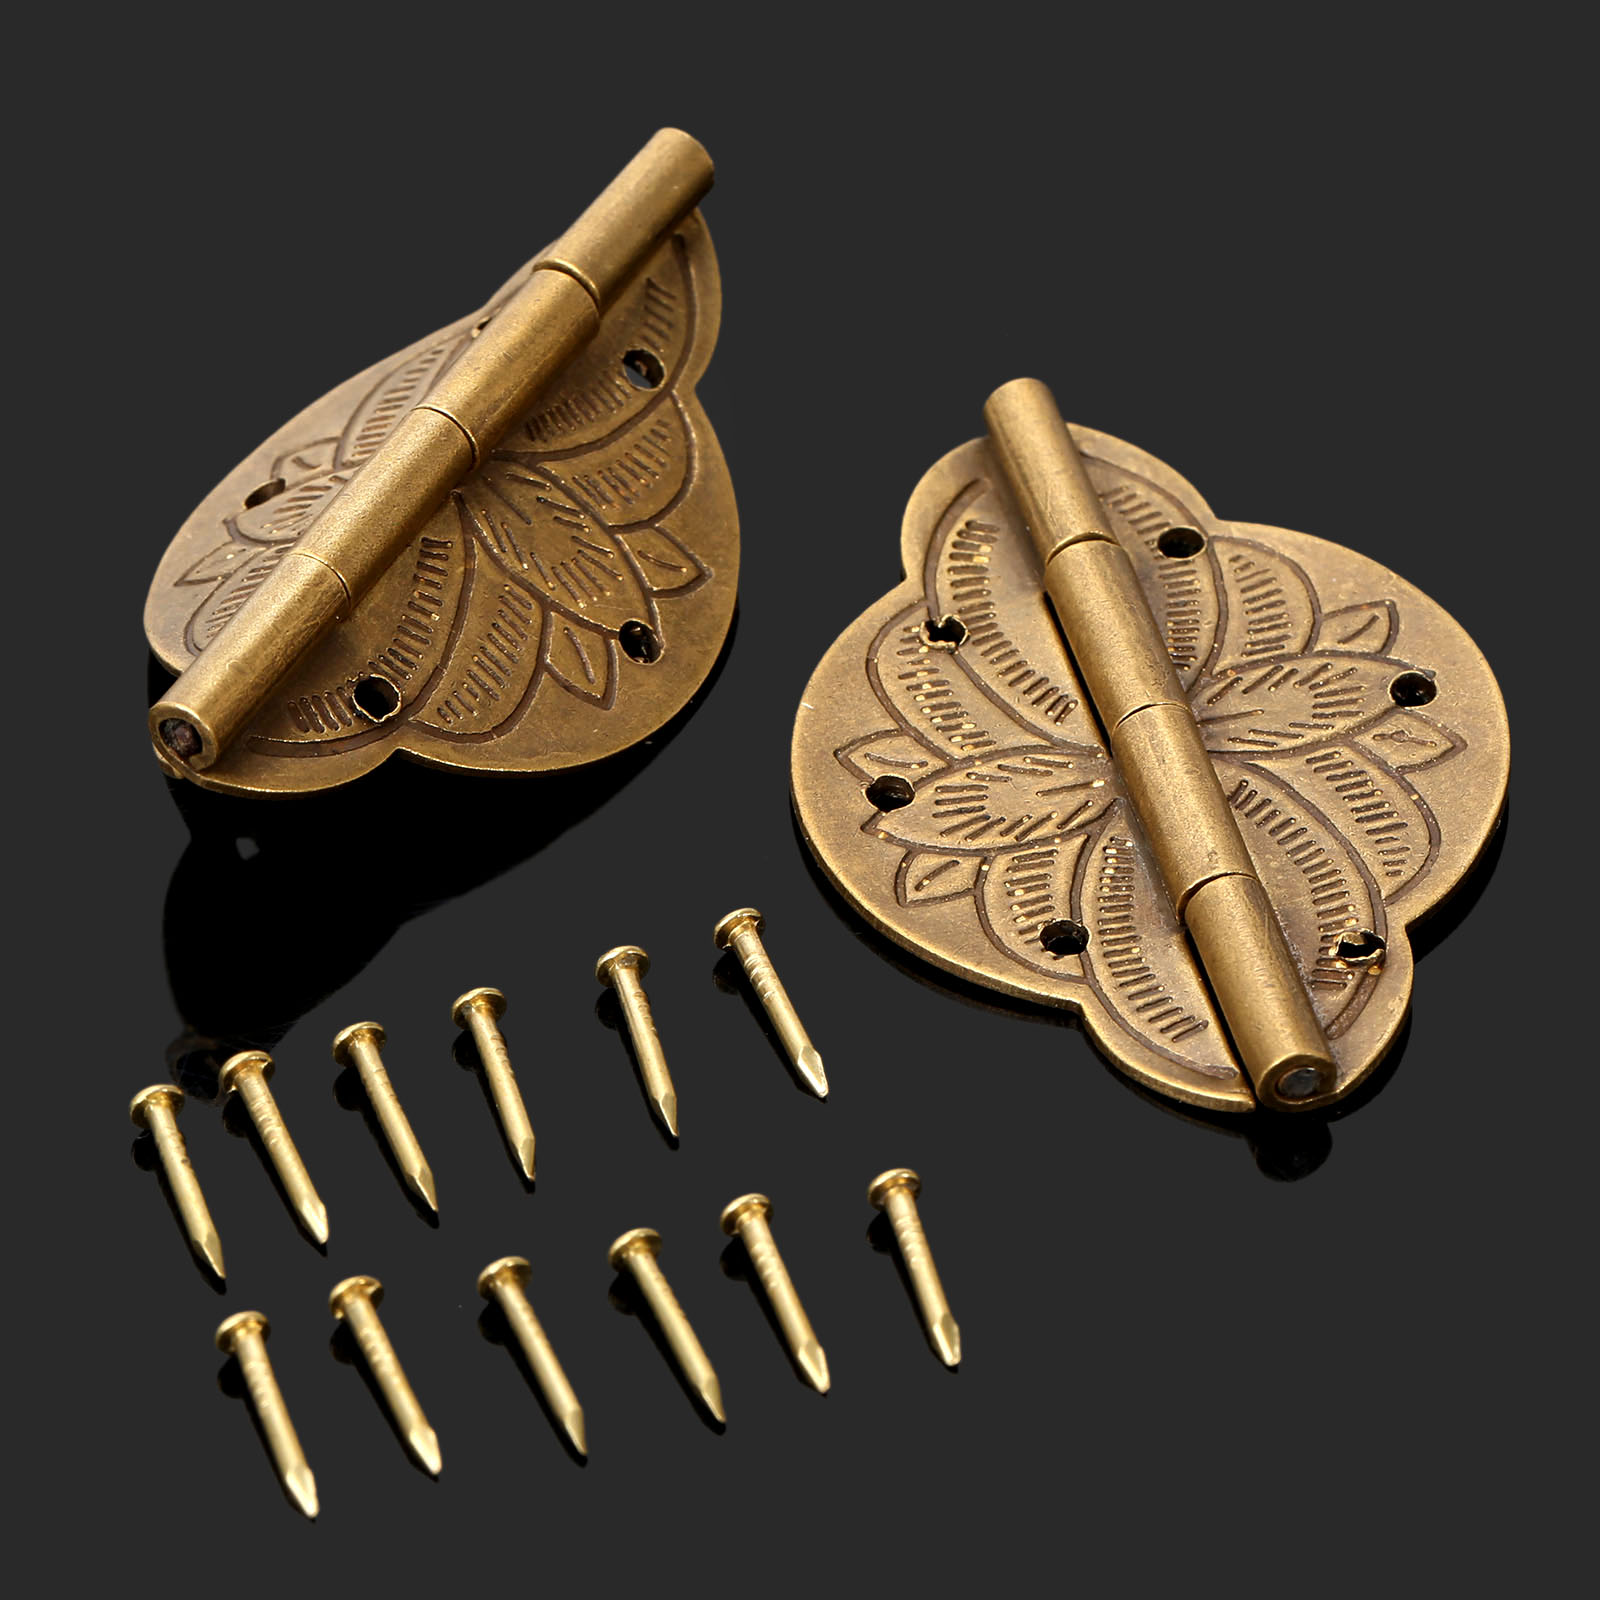 2Pcs Brass Plated Mini Hinge Antique Bronze Decorative Jewelry Wooden Box Cabinet Door Hinges+Nail Furniture Accessories 43x31mm 10pcs kak antique bronze hinges cabinet door drawer decorative mini hinge for jewelry storage wooden box furniture h